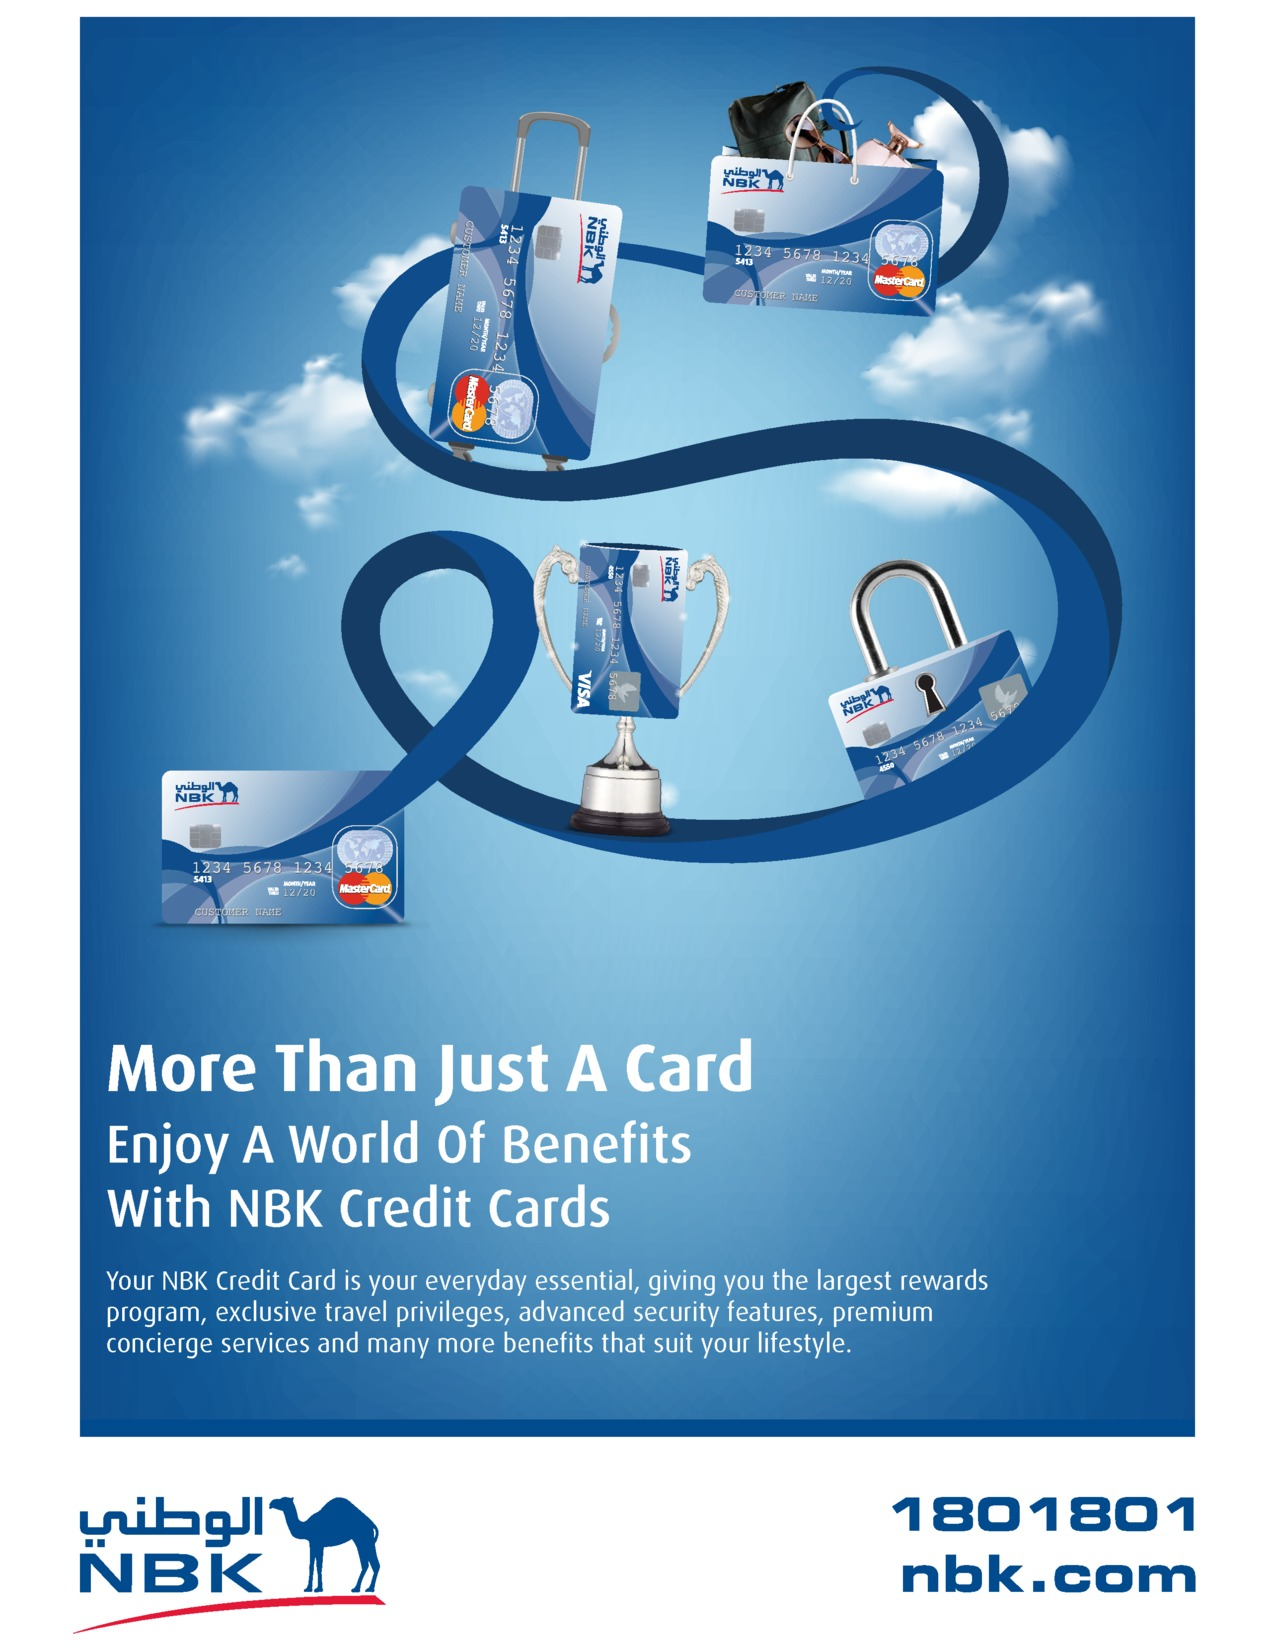 enjoy-a-world-of-benefits-with-nbk-credit-cards-kuwait